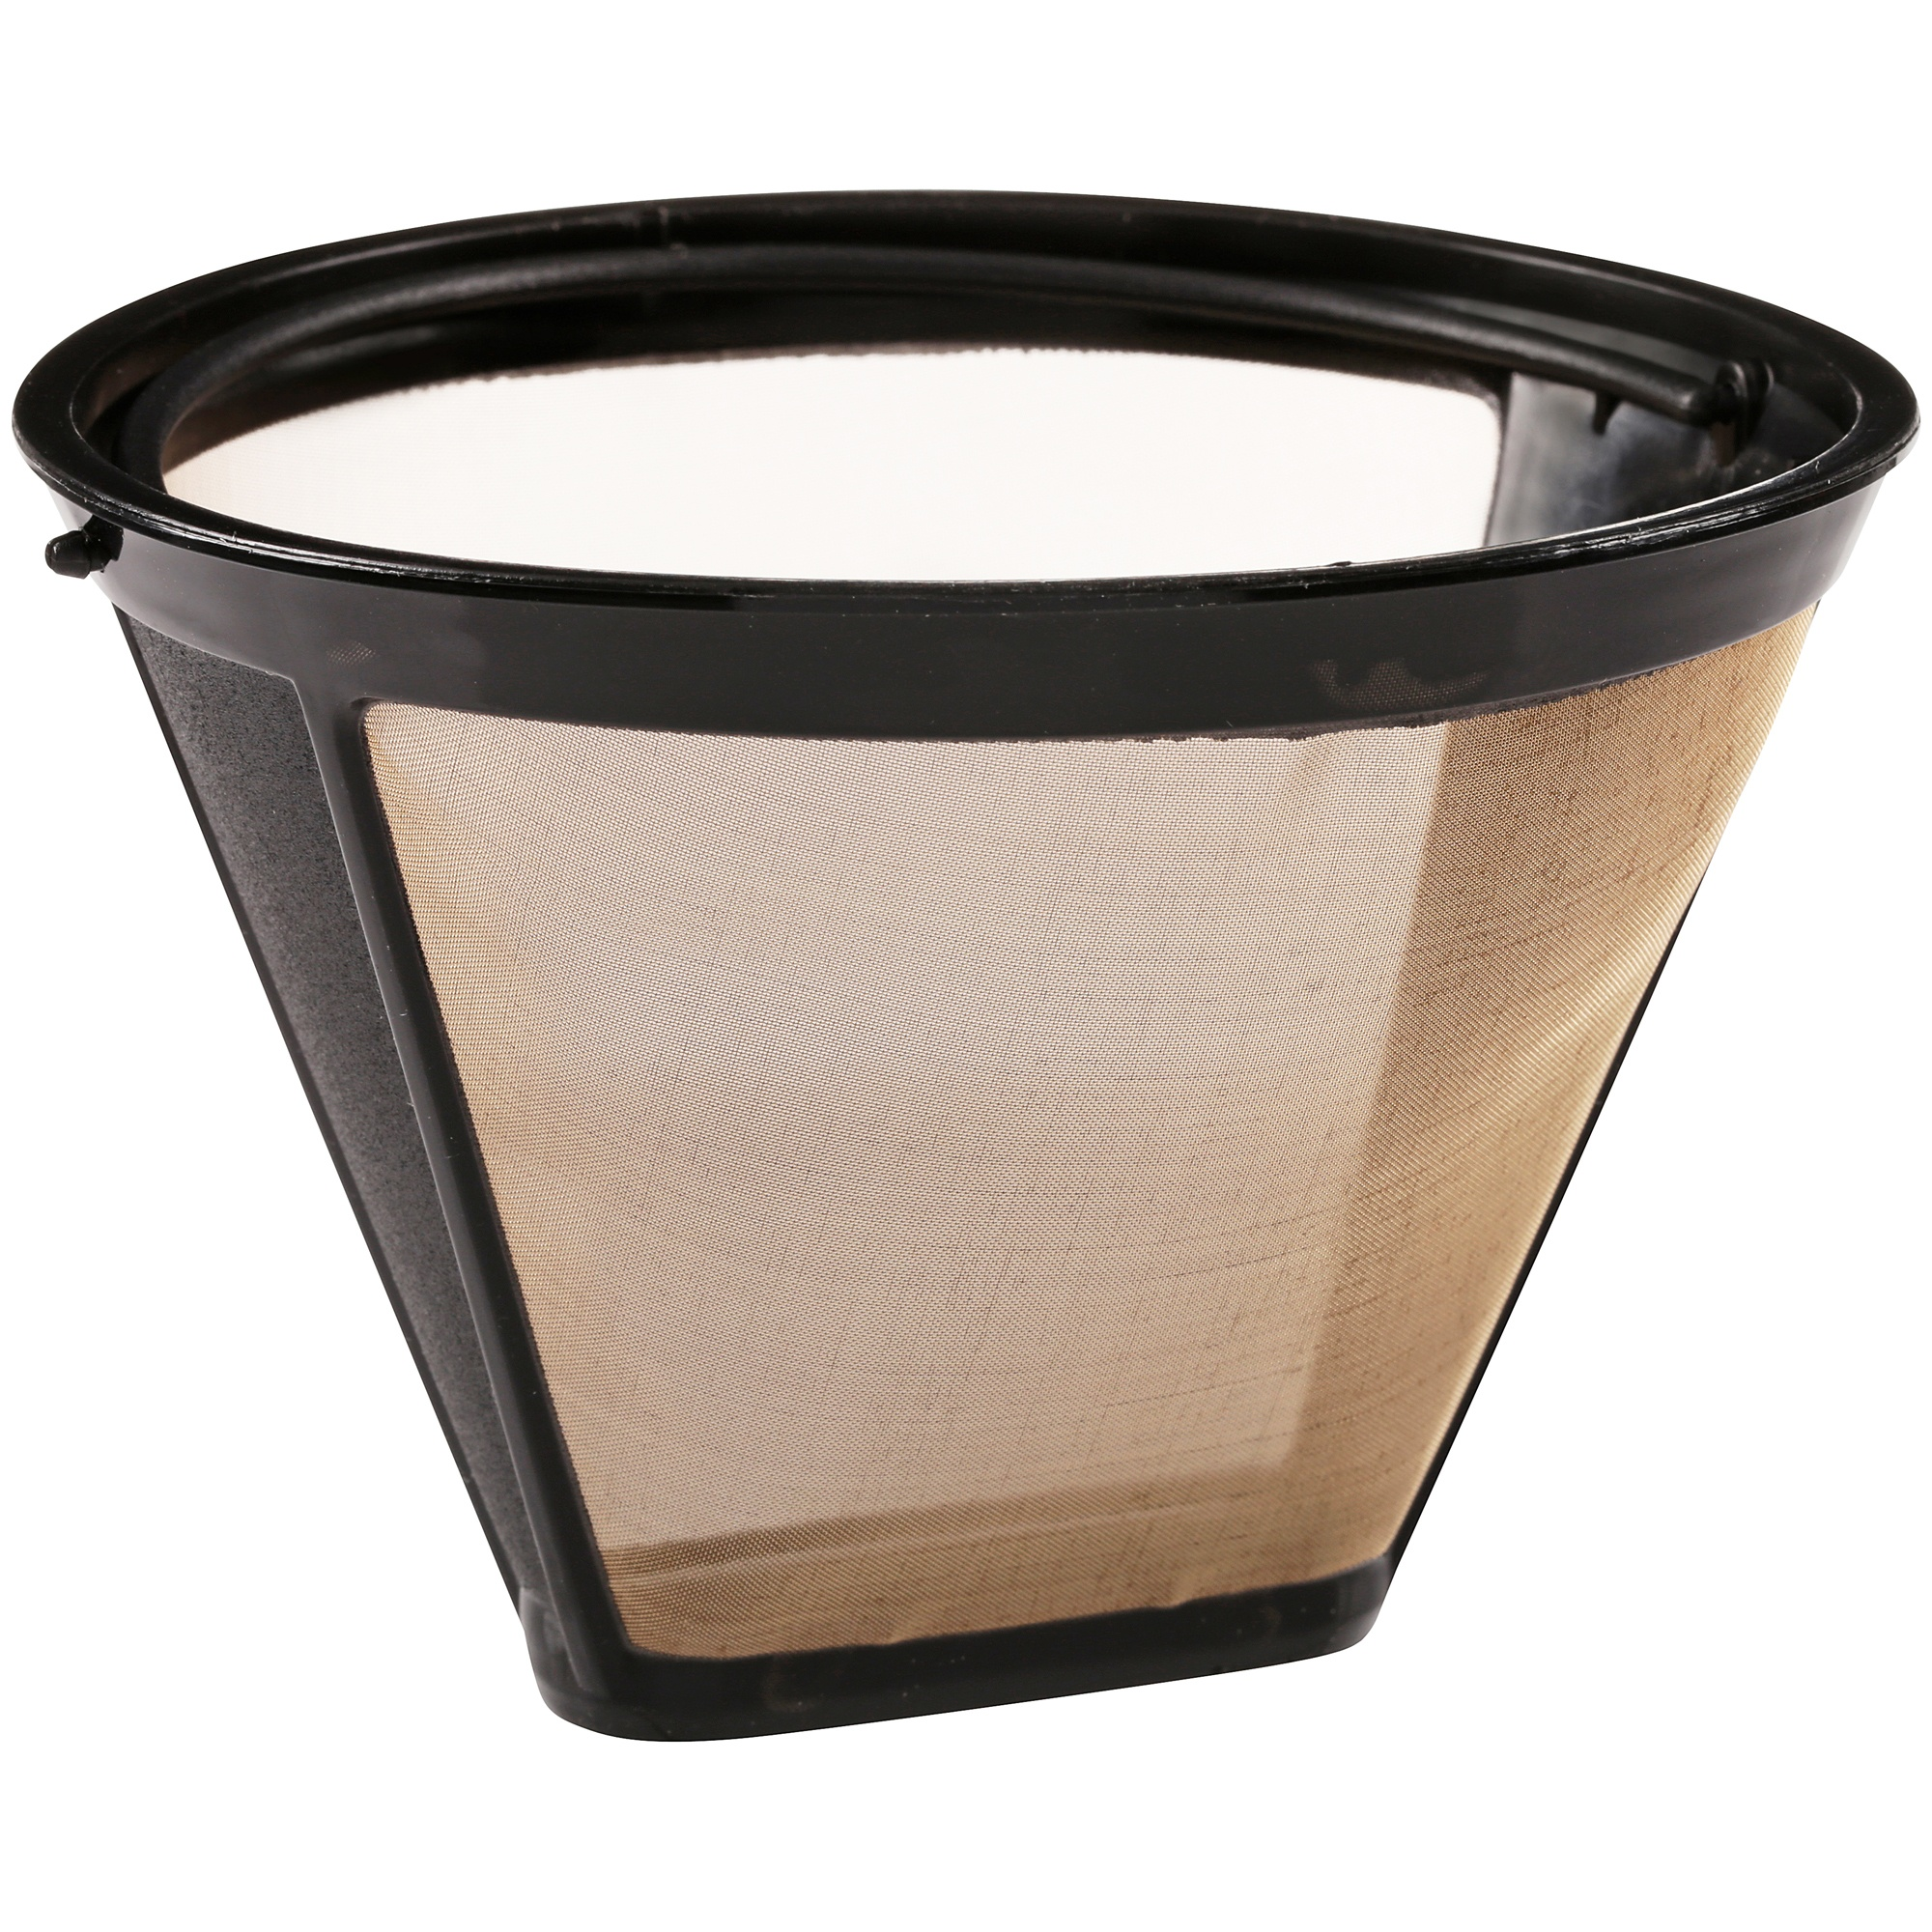 Click here to buy Medelco Café Brew Collection #4 Cone Universal Permanent Coffee Filter by Medelco, Inc..